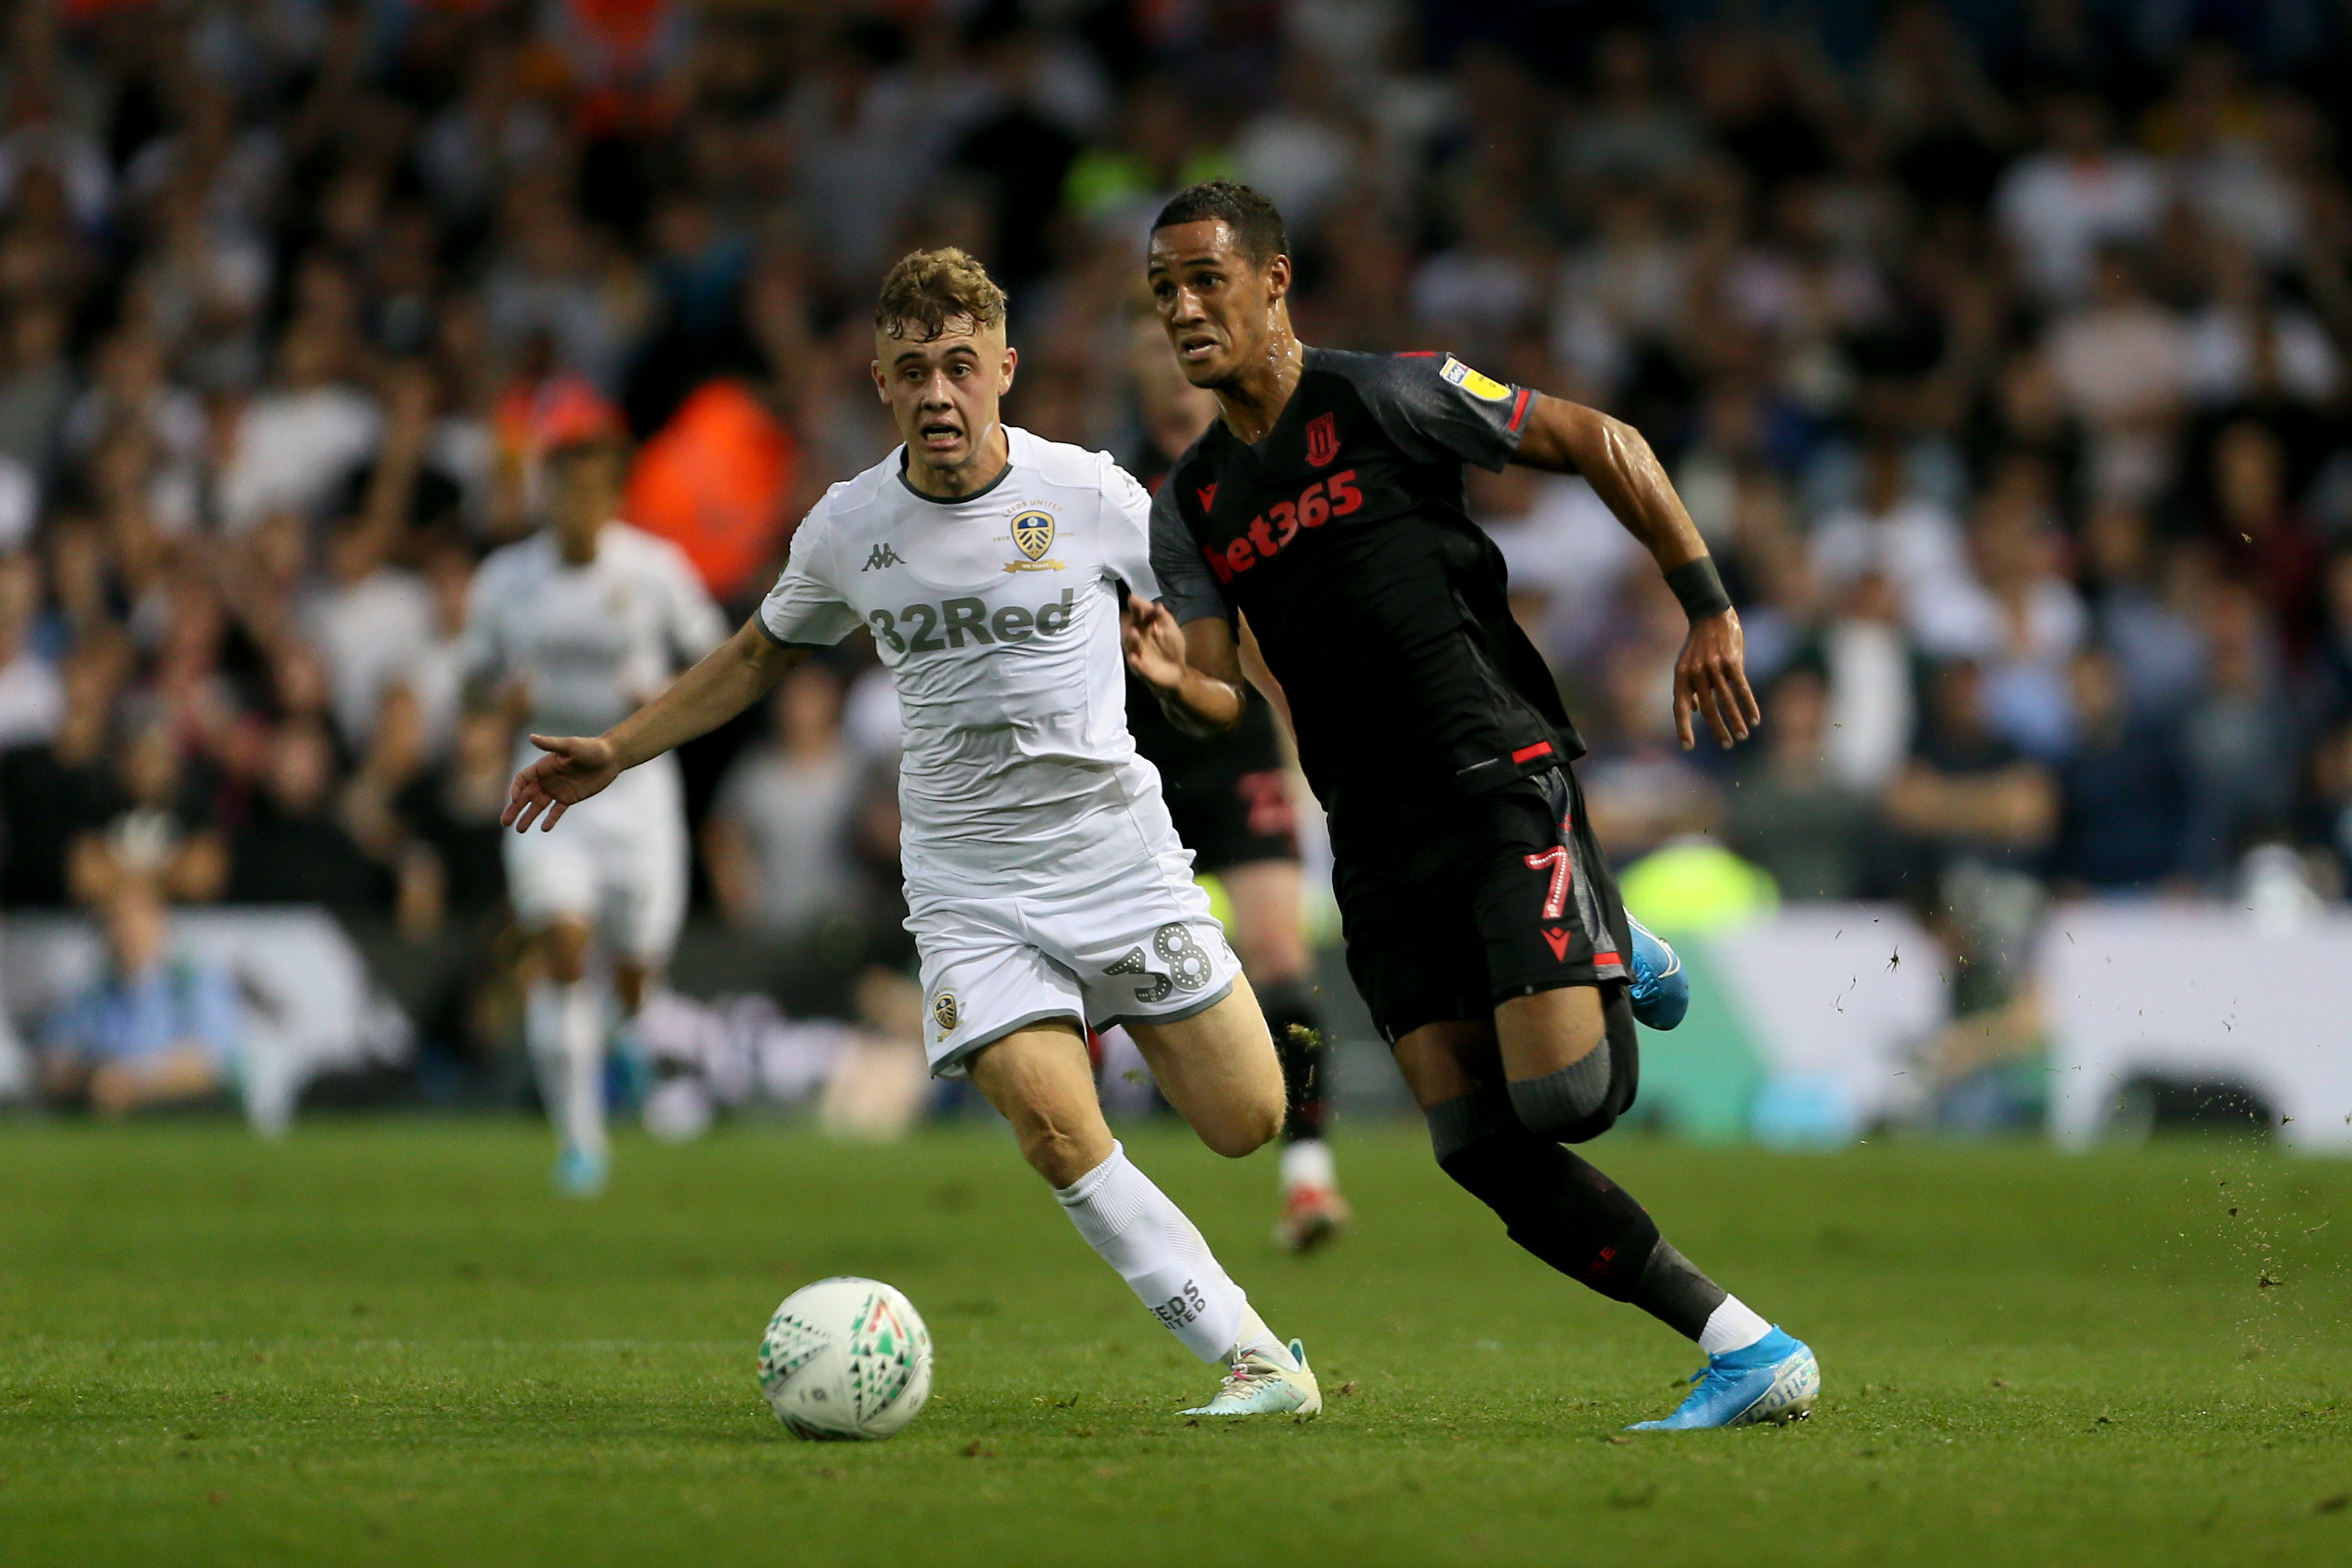 Leeds United v Stoke City - Carabao Cup - Second Round - Elland Road